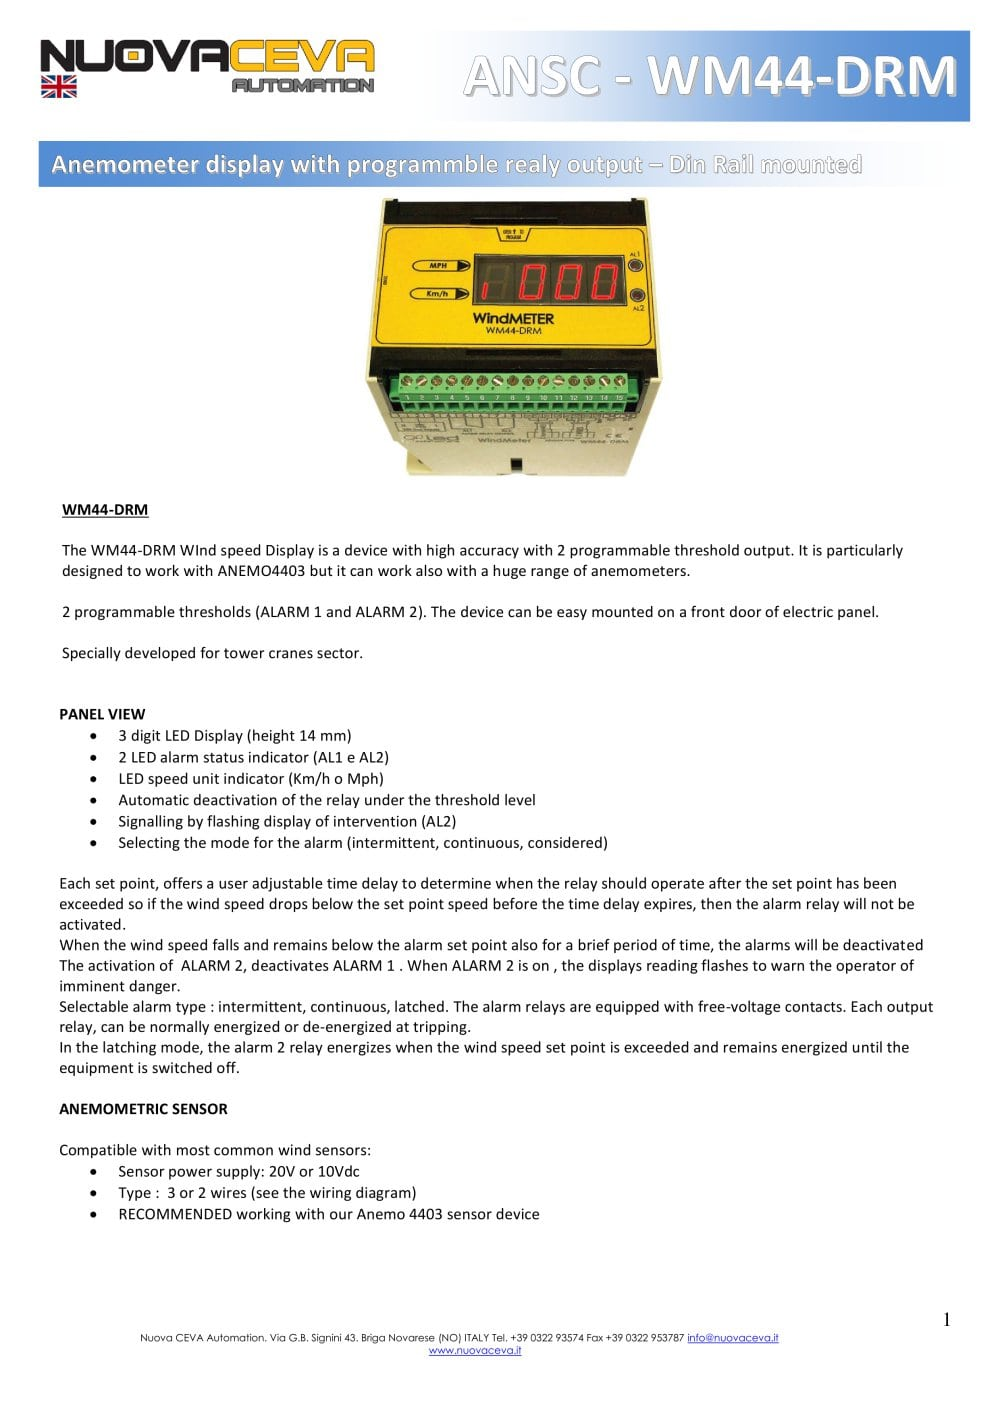 Wm44 Drm Nuova Ceva Automation Pdf Catalogue Technical Led Display Panel Wiring Diagram 1 4 Pages